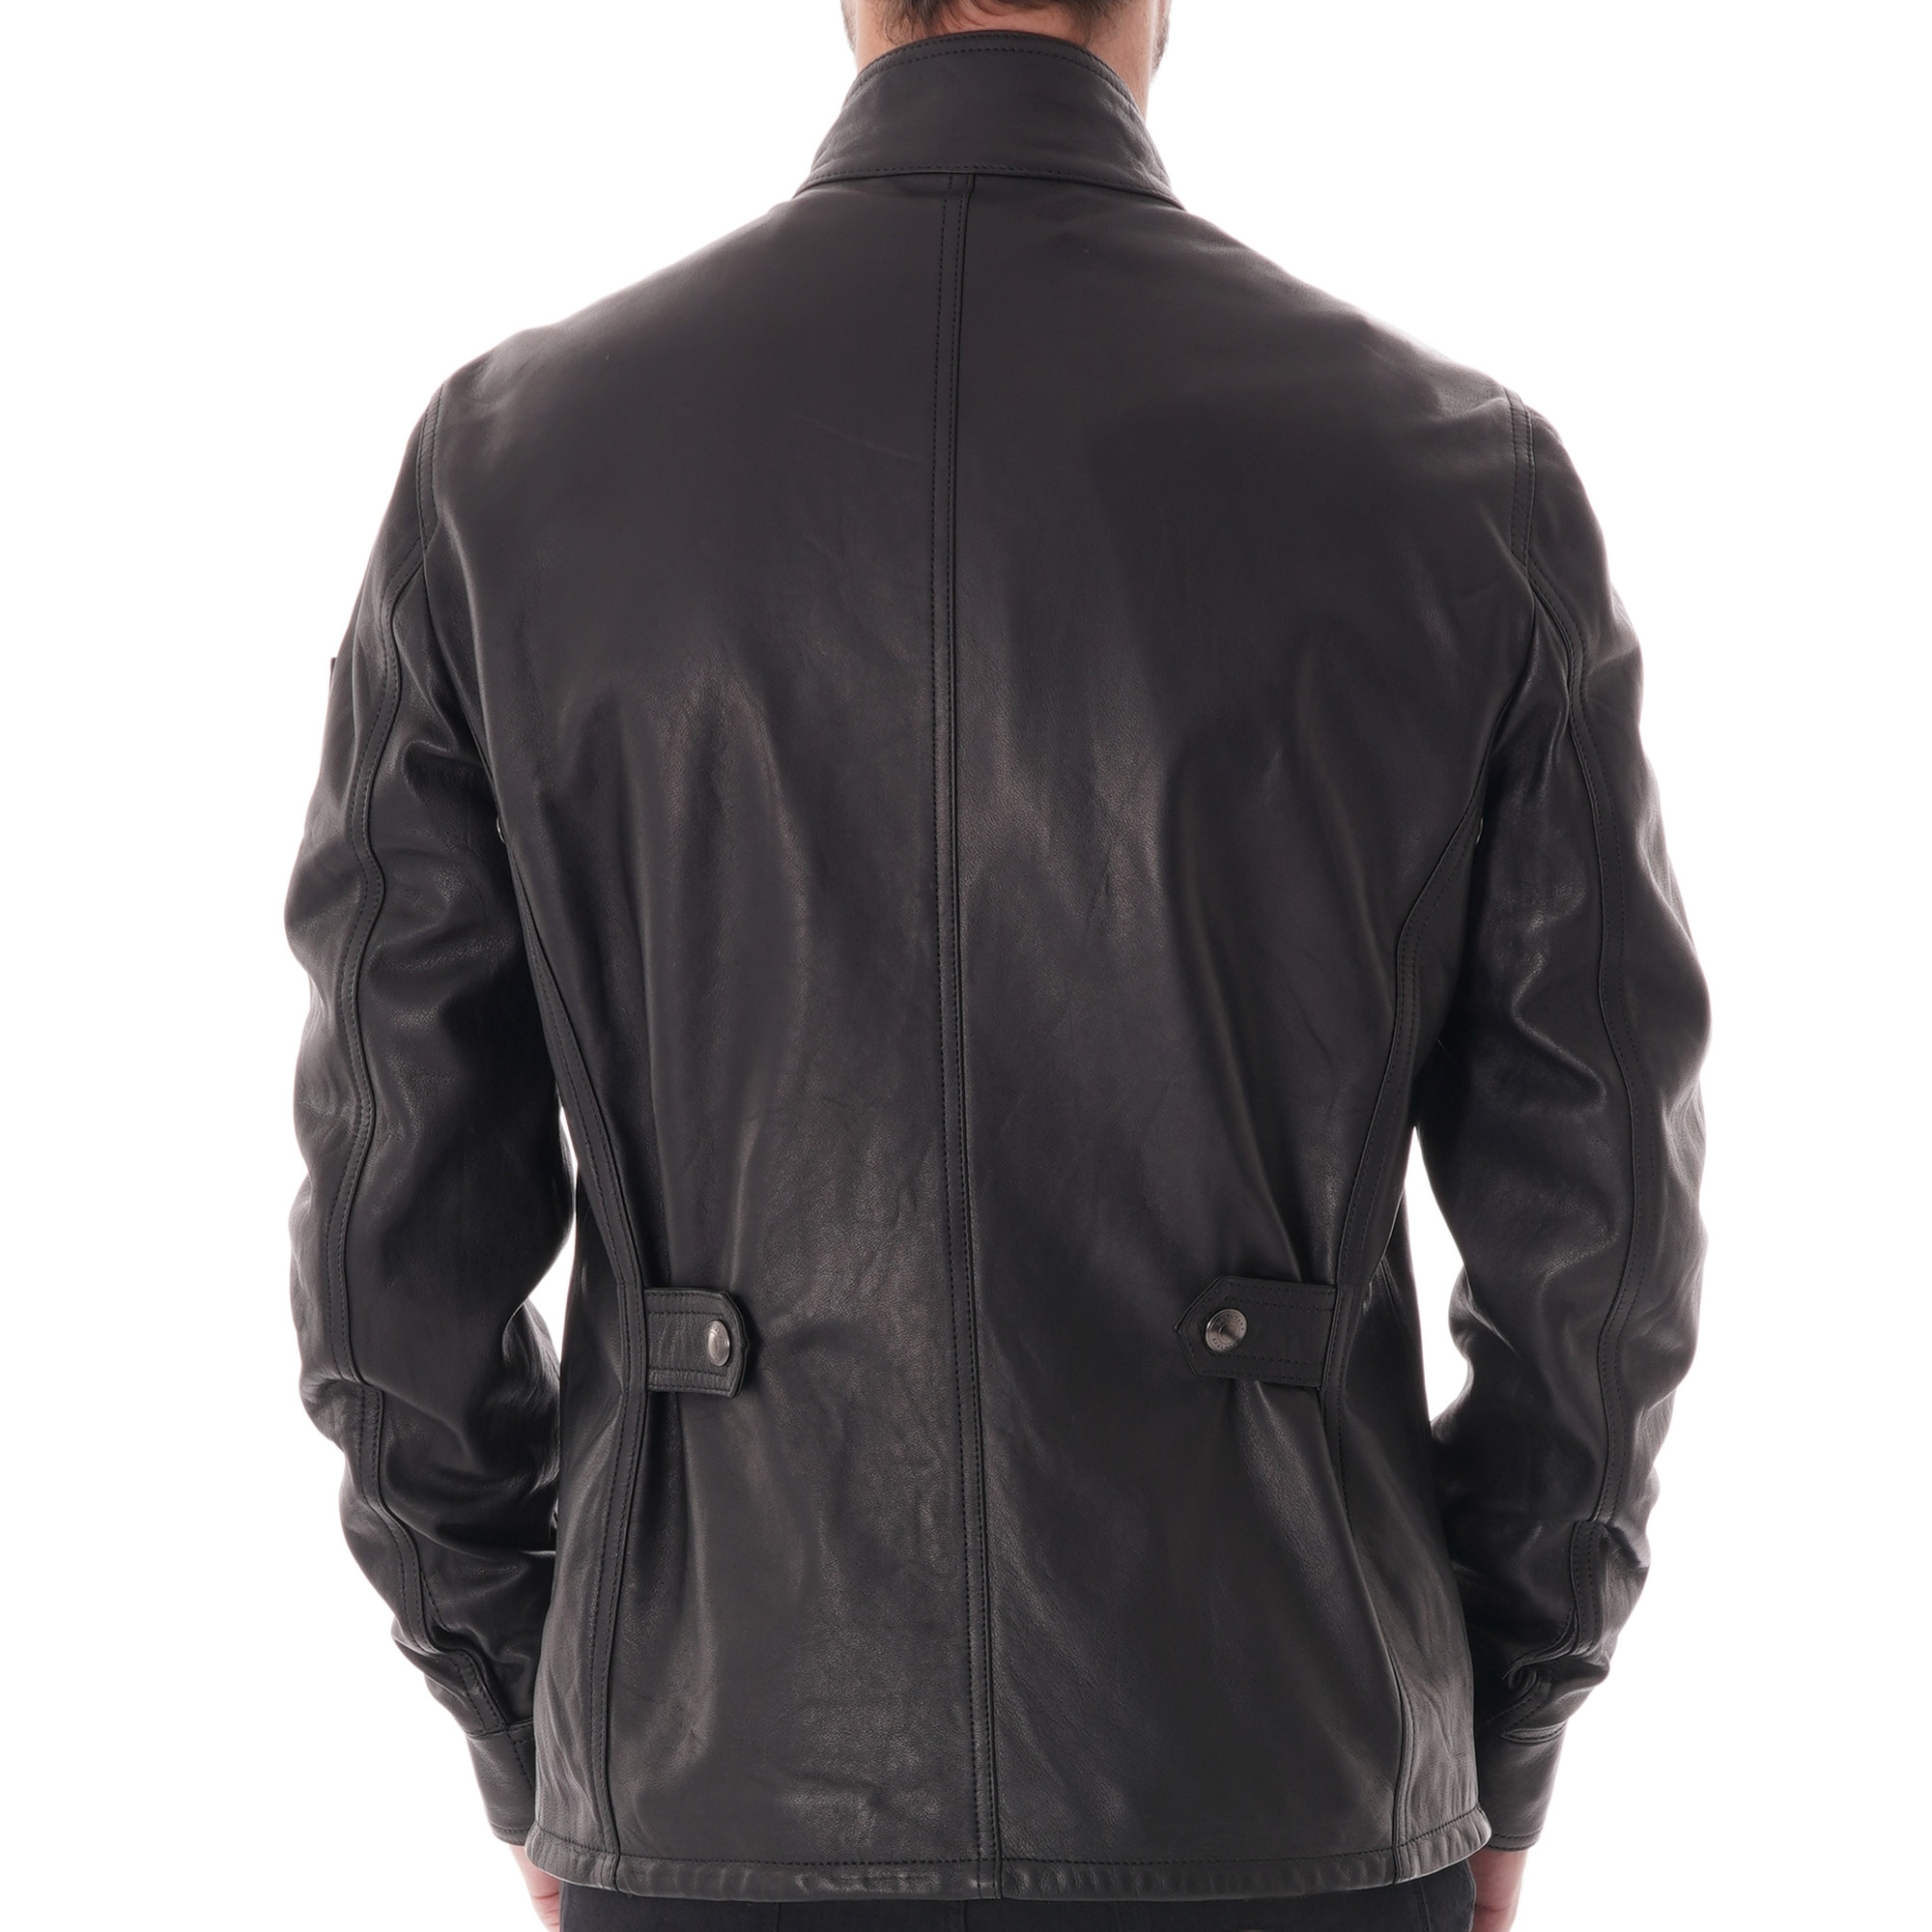 neueste Kollektion Super Specials Tiefstpreis Denesmere Leather Jacket